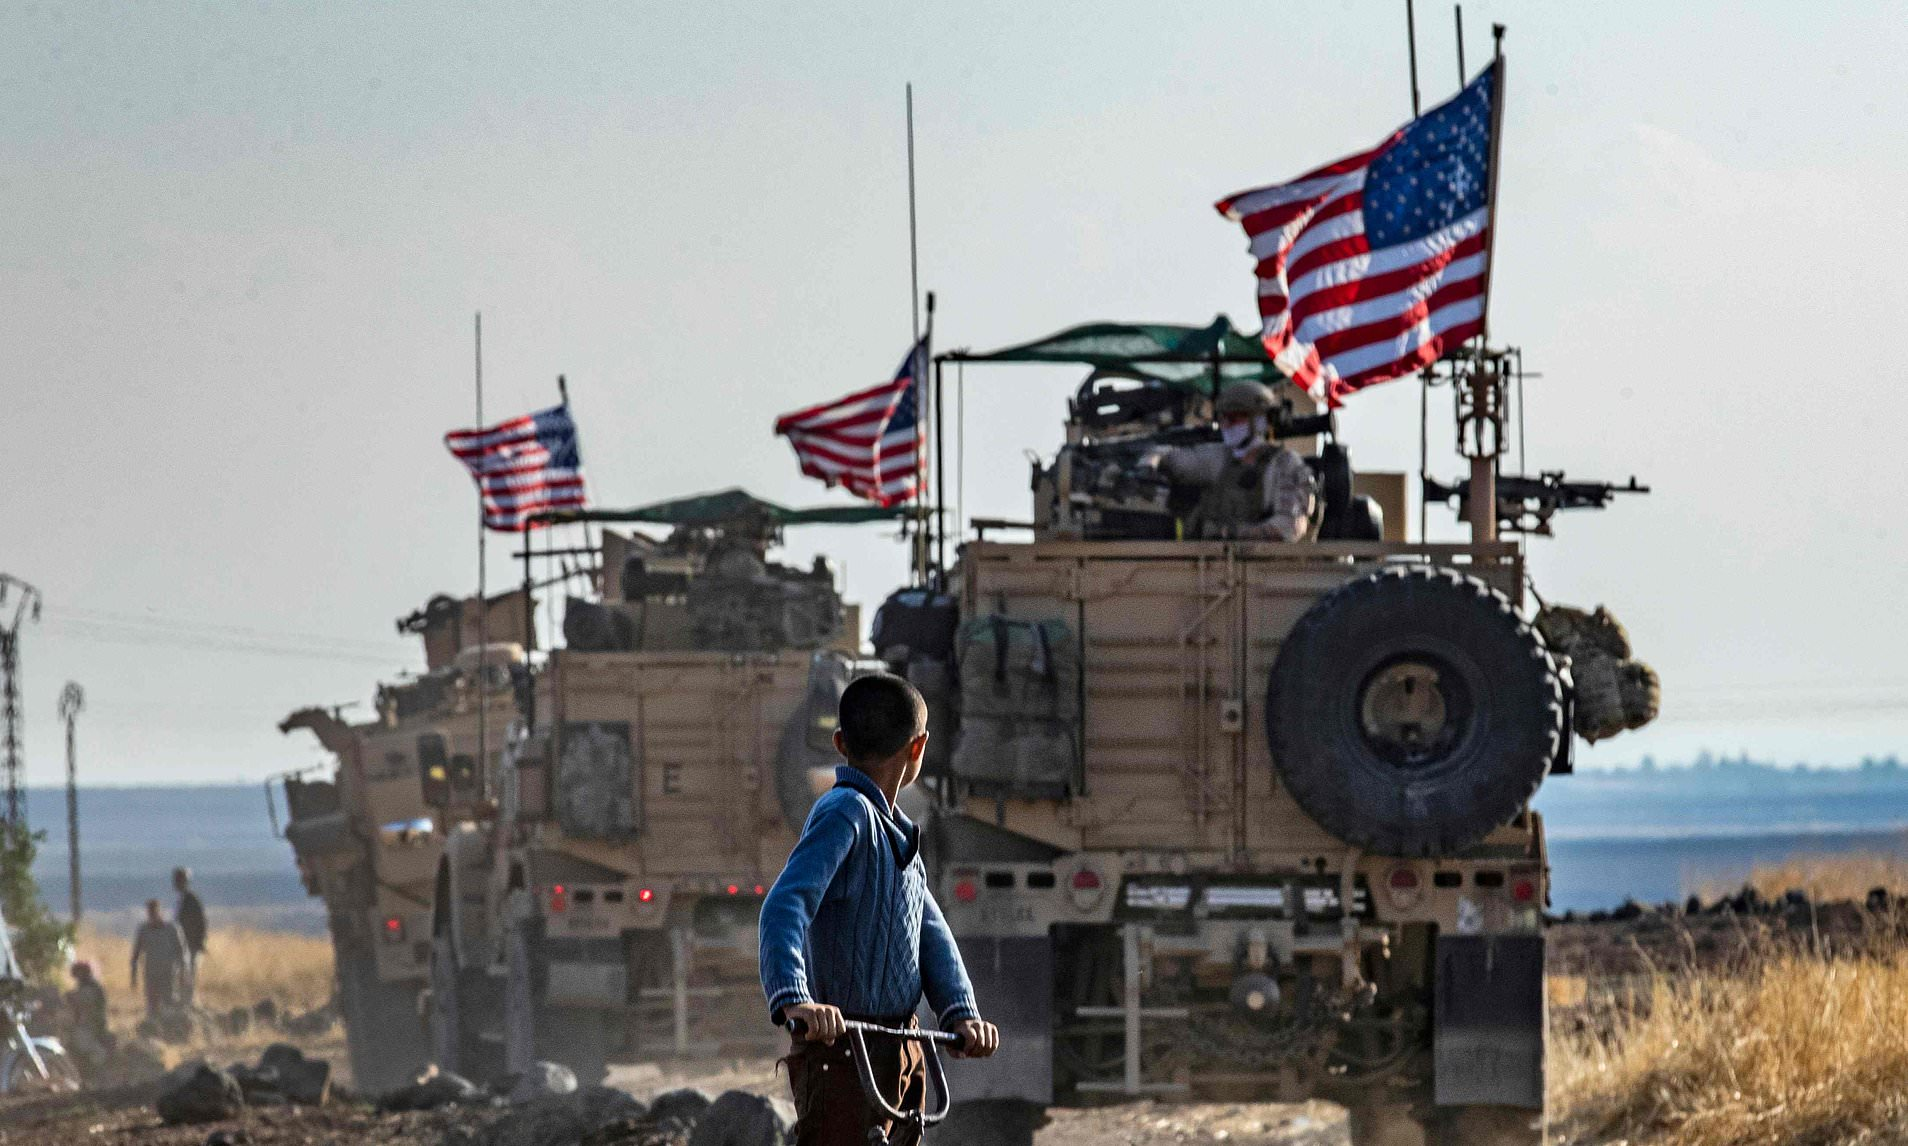 US troops injured in tense confrontation with Russians in Syria